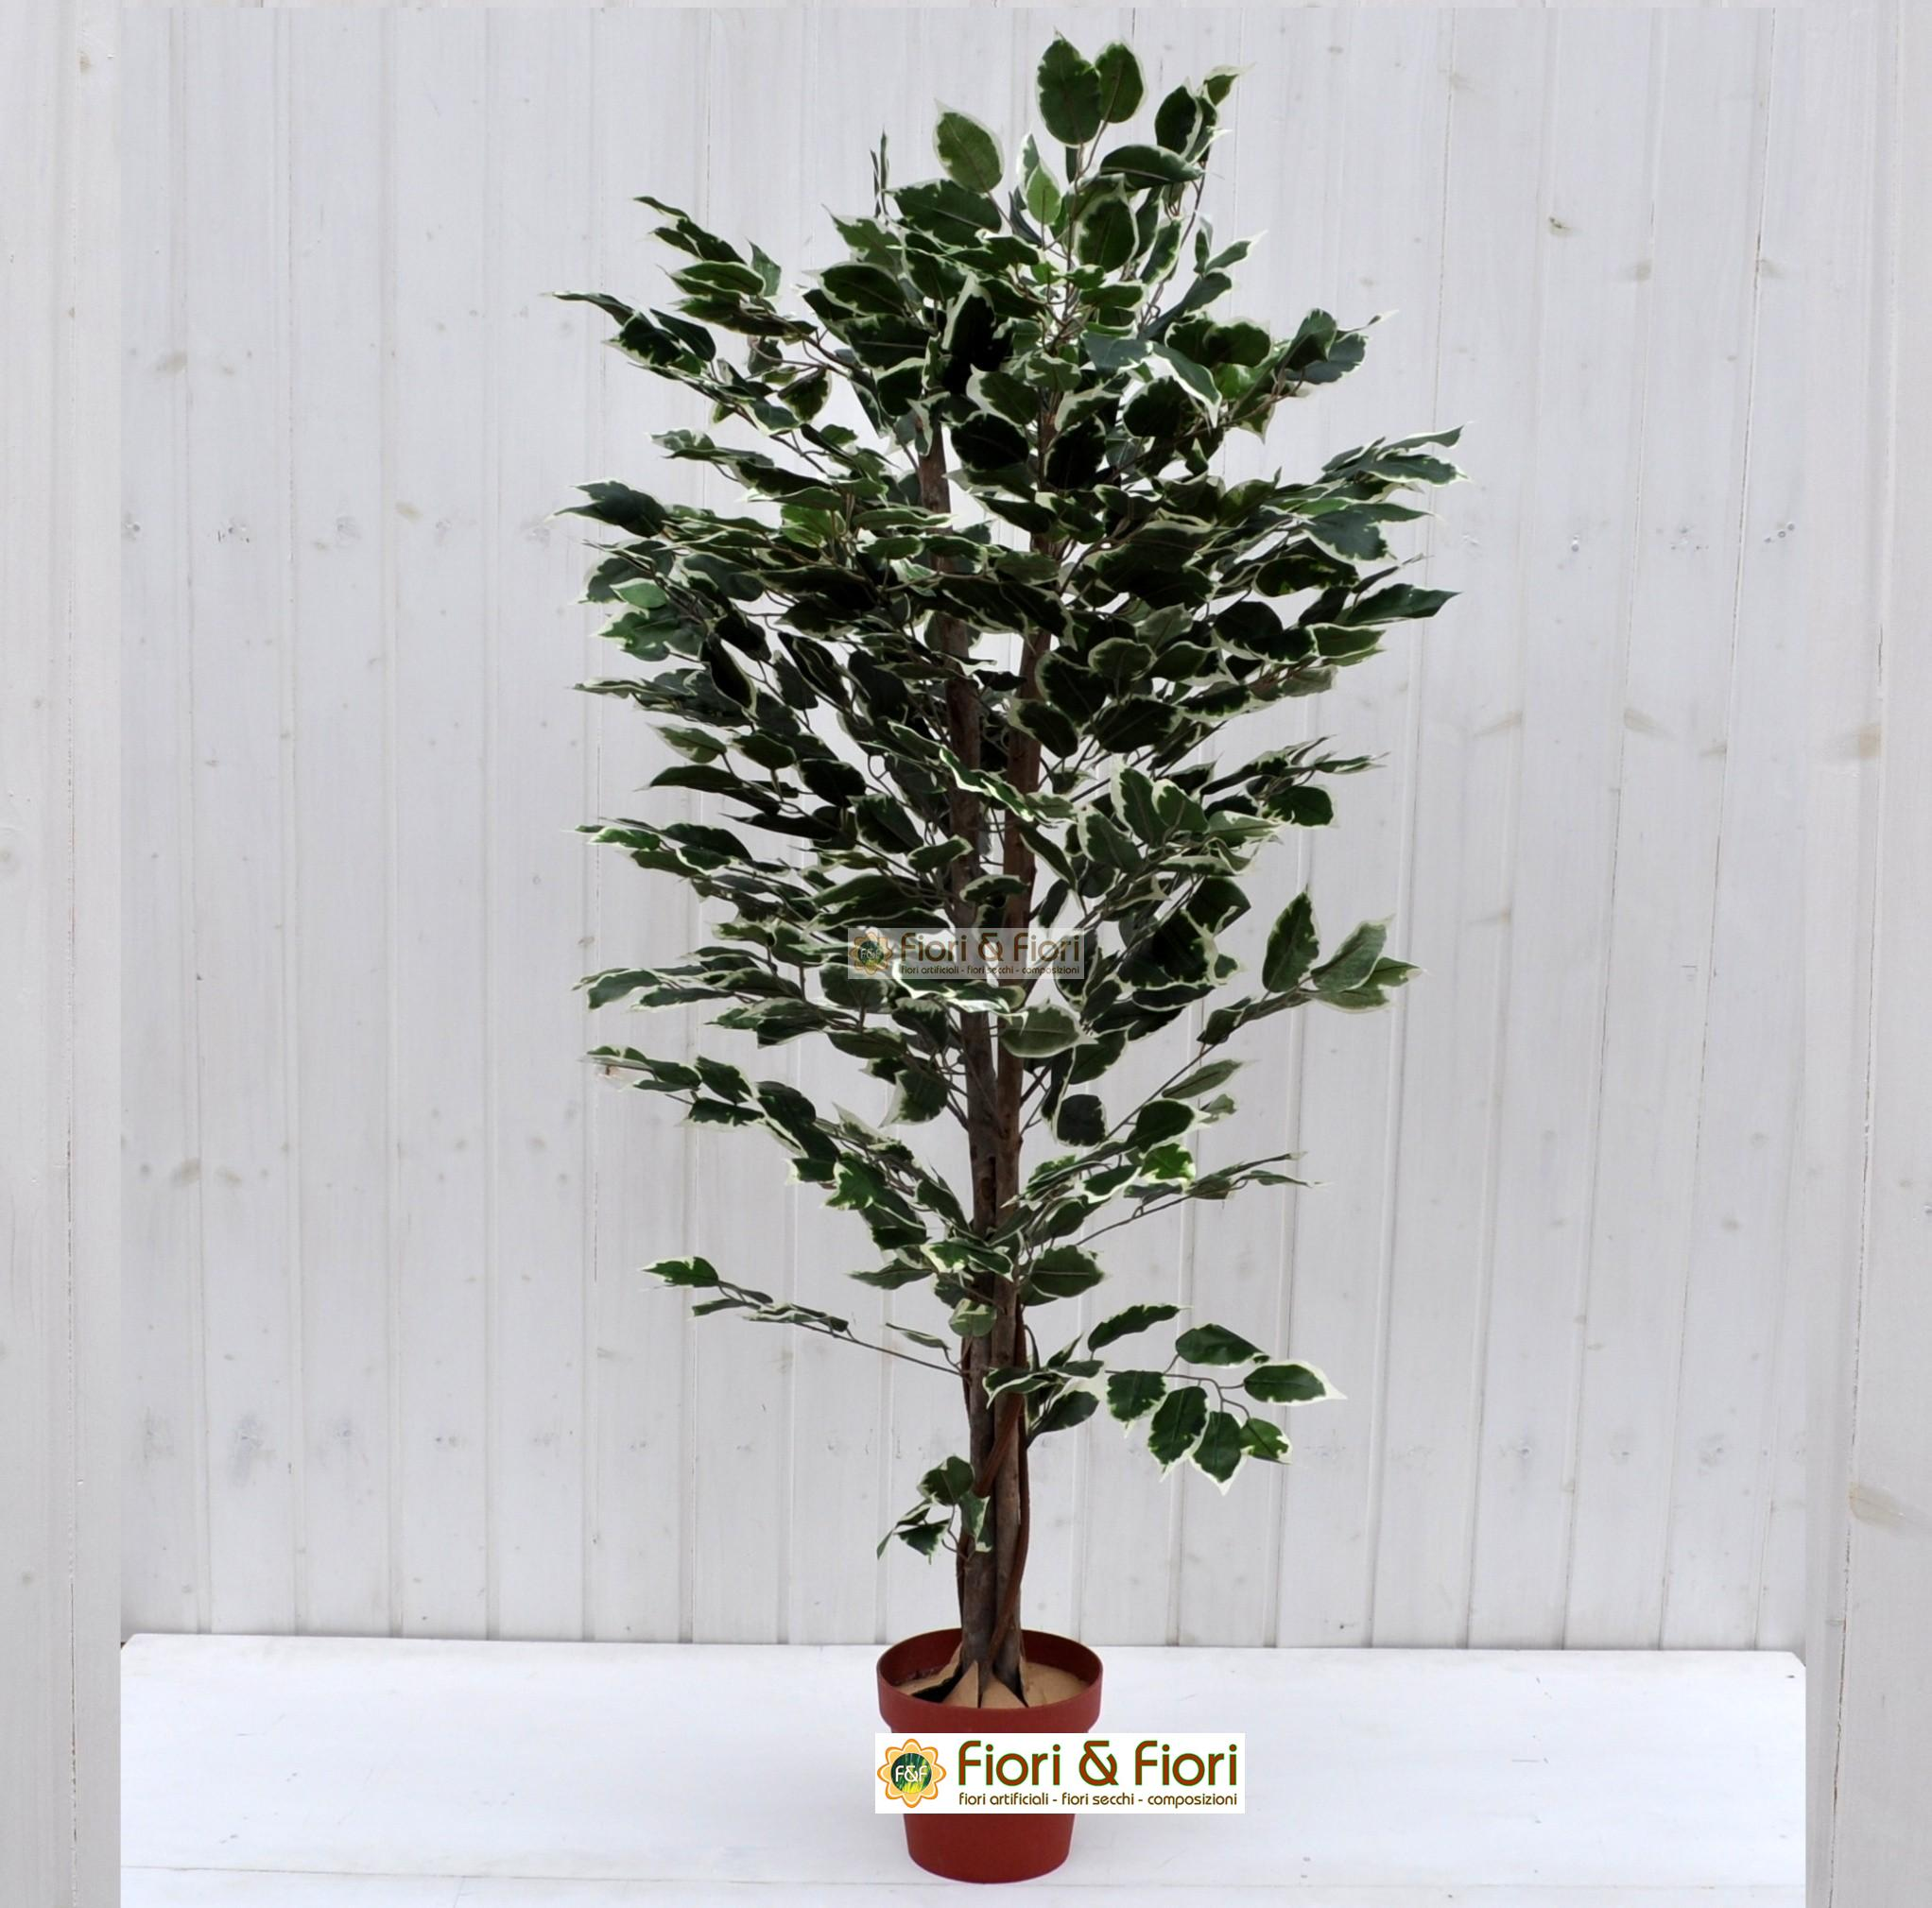 Pianta artificiale Ficus Benjamin